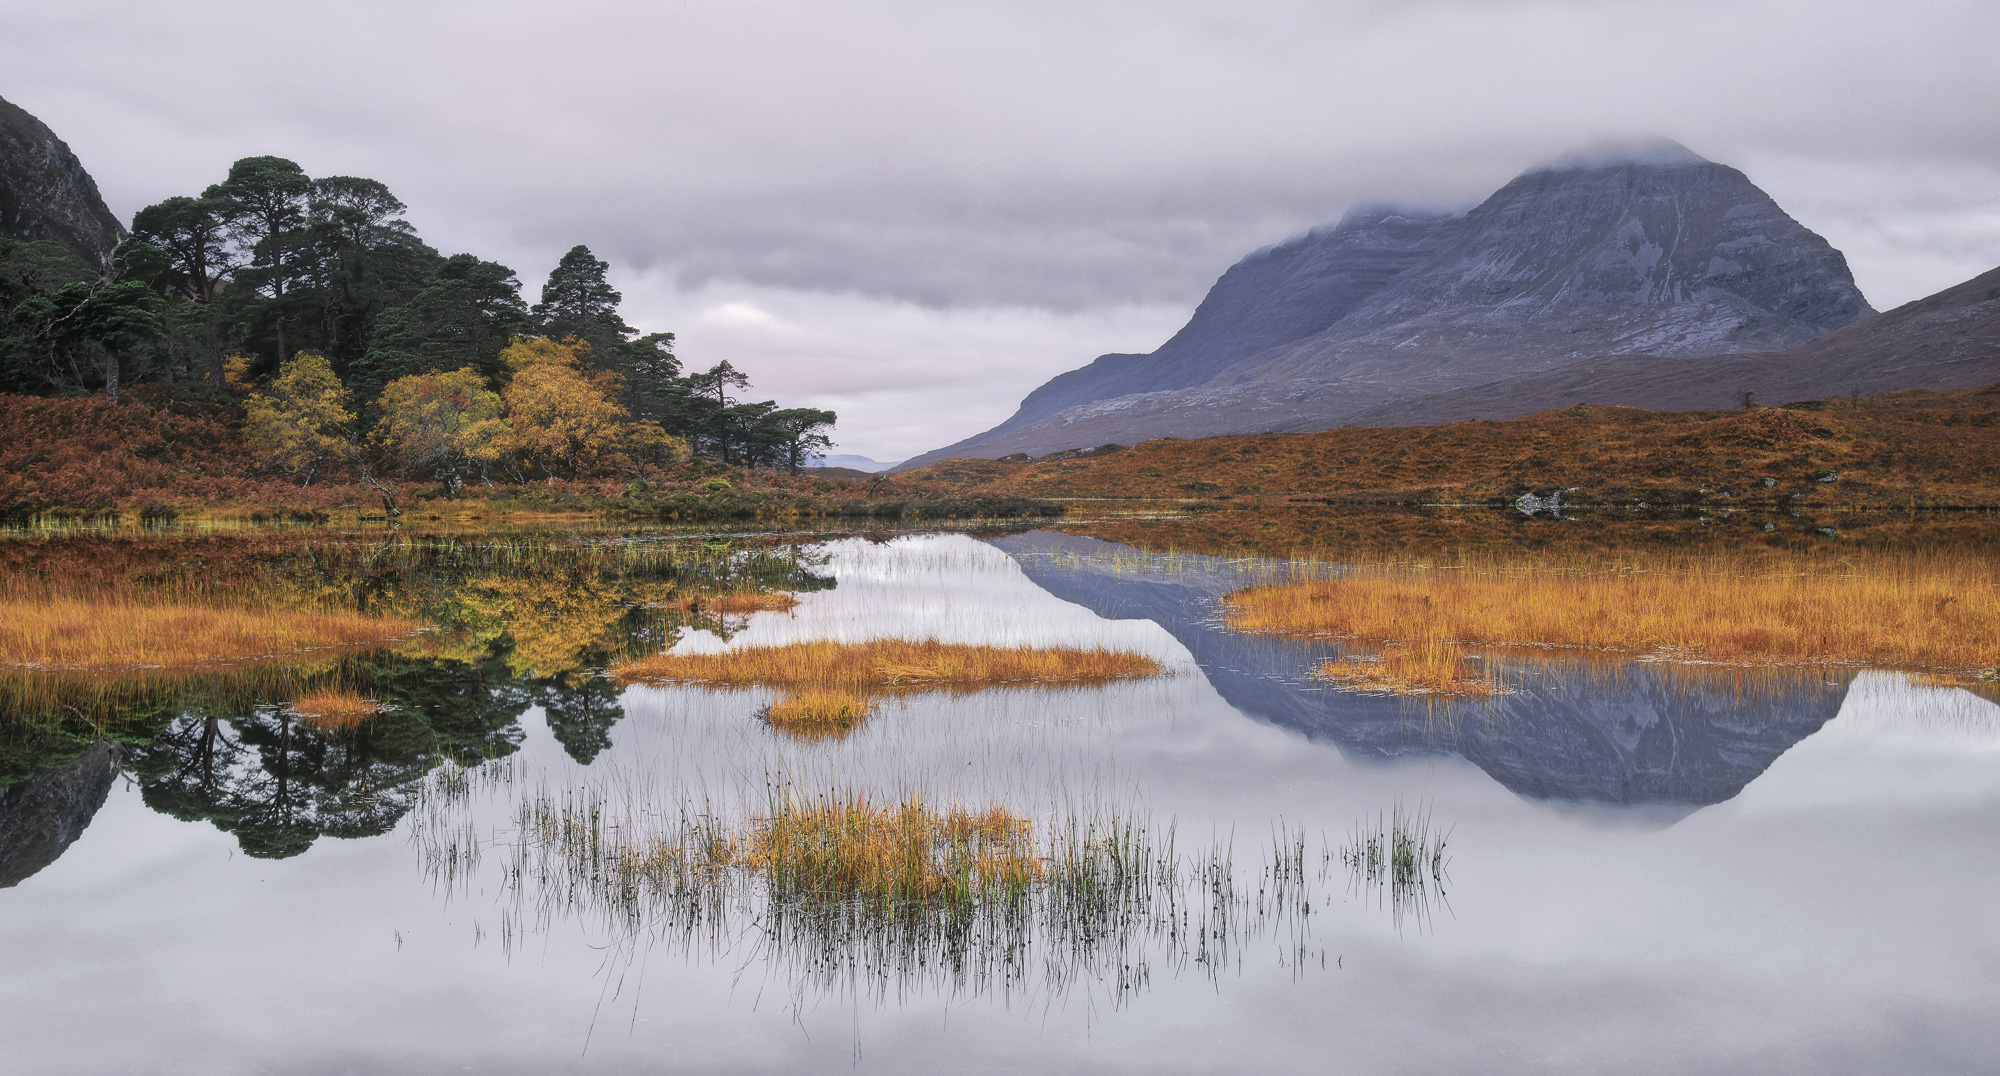 Loch Clair had undoubtedly reached the peak of Autumn colour. The Deer grass islands were of such a luminous orange hue...